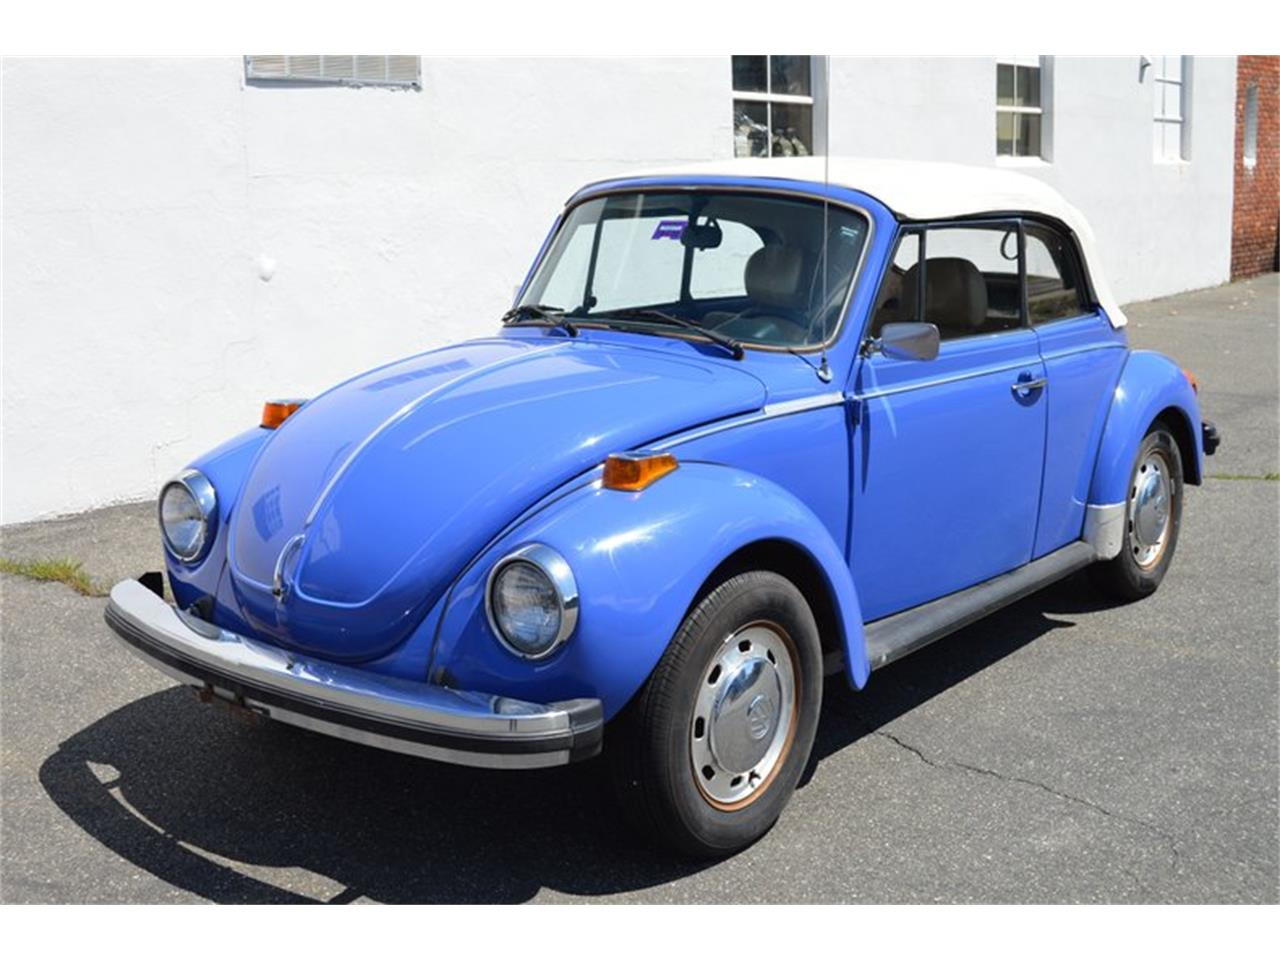 for sale 1977 volkswagen beetle in springfield, massachusetts cars - springfield, ma at geebo